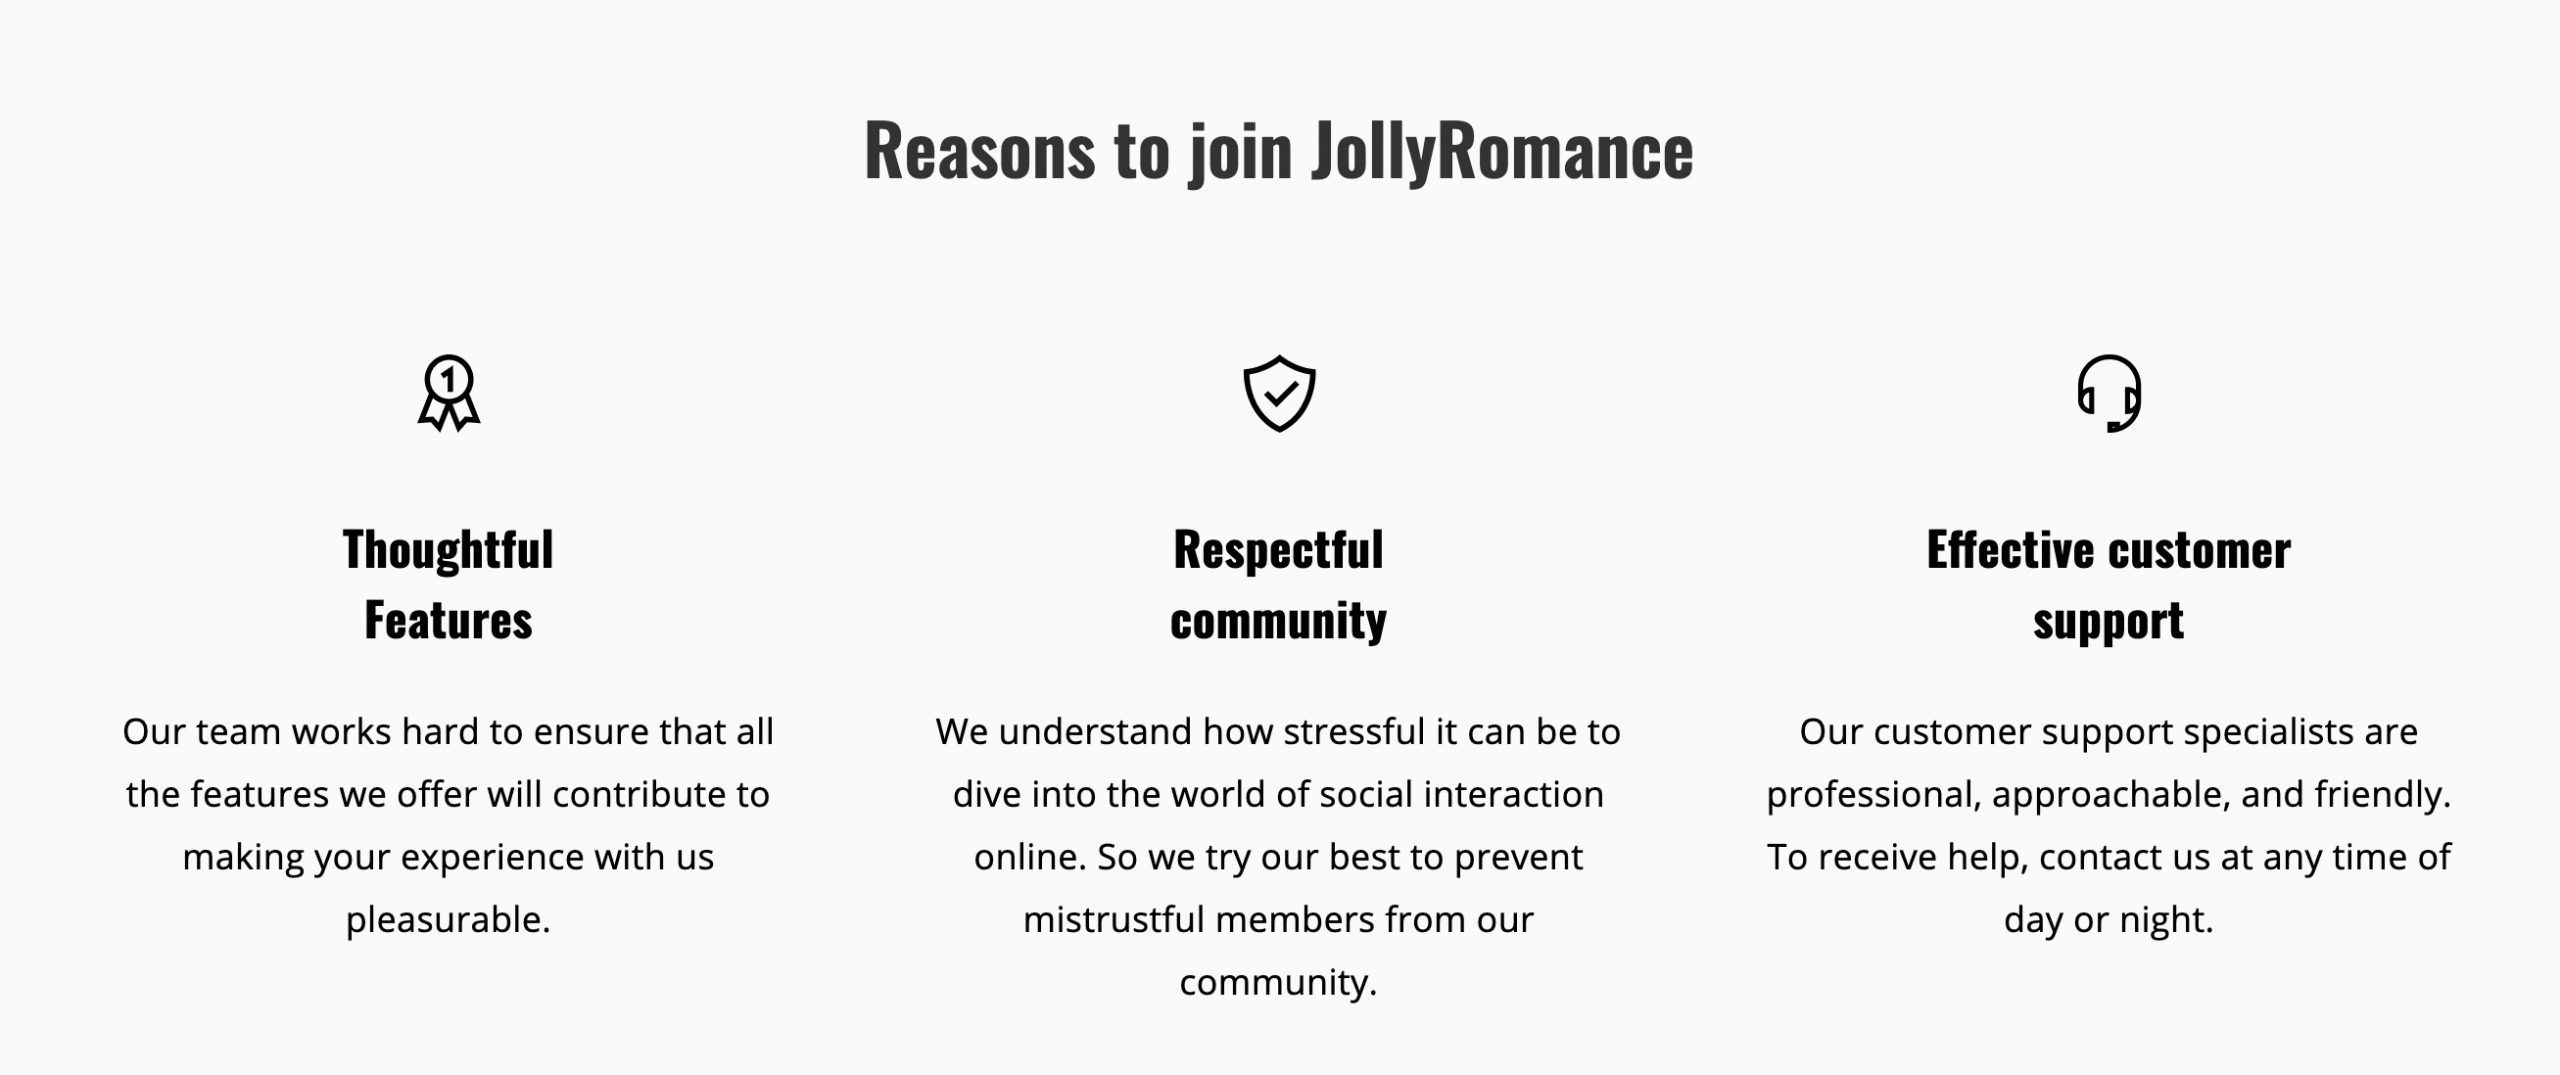 JollyRomance reasons to join